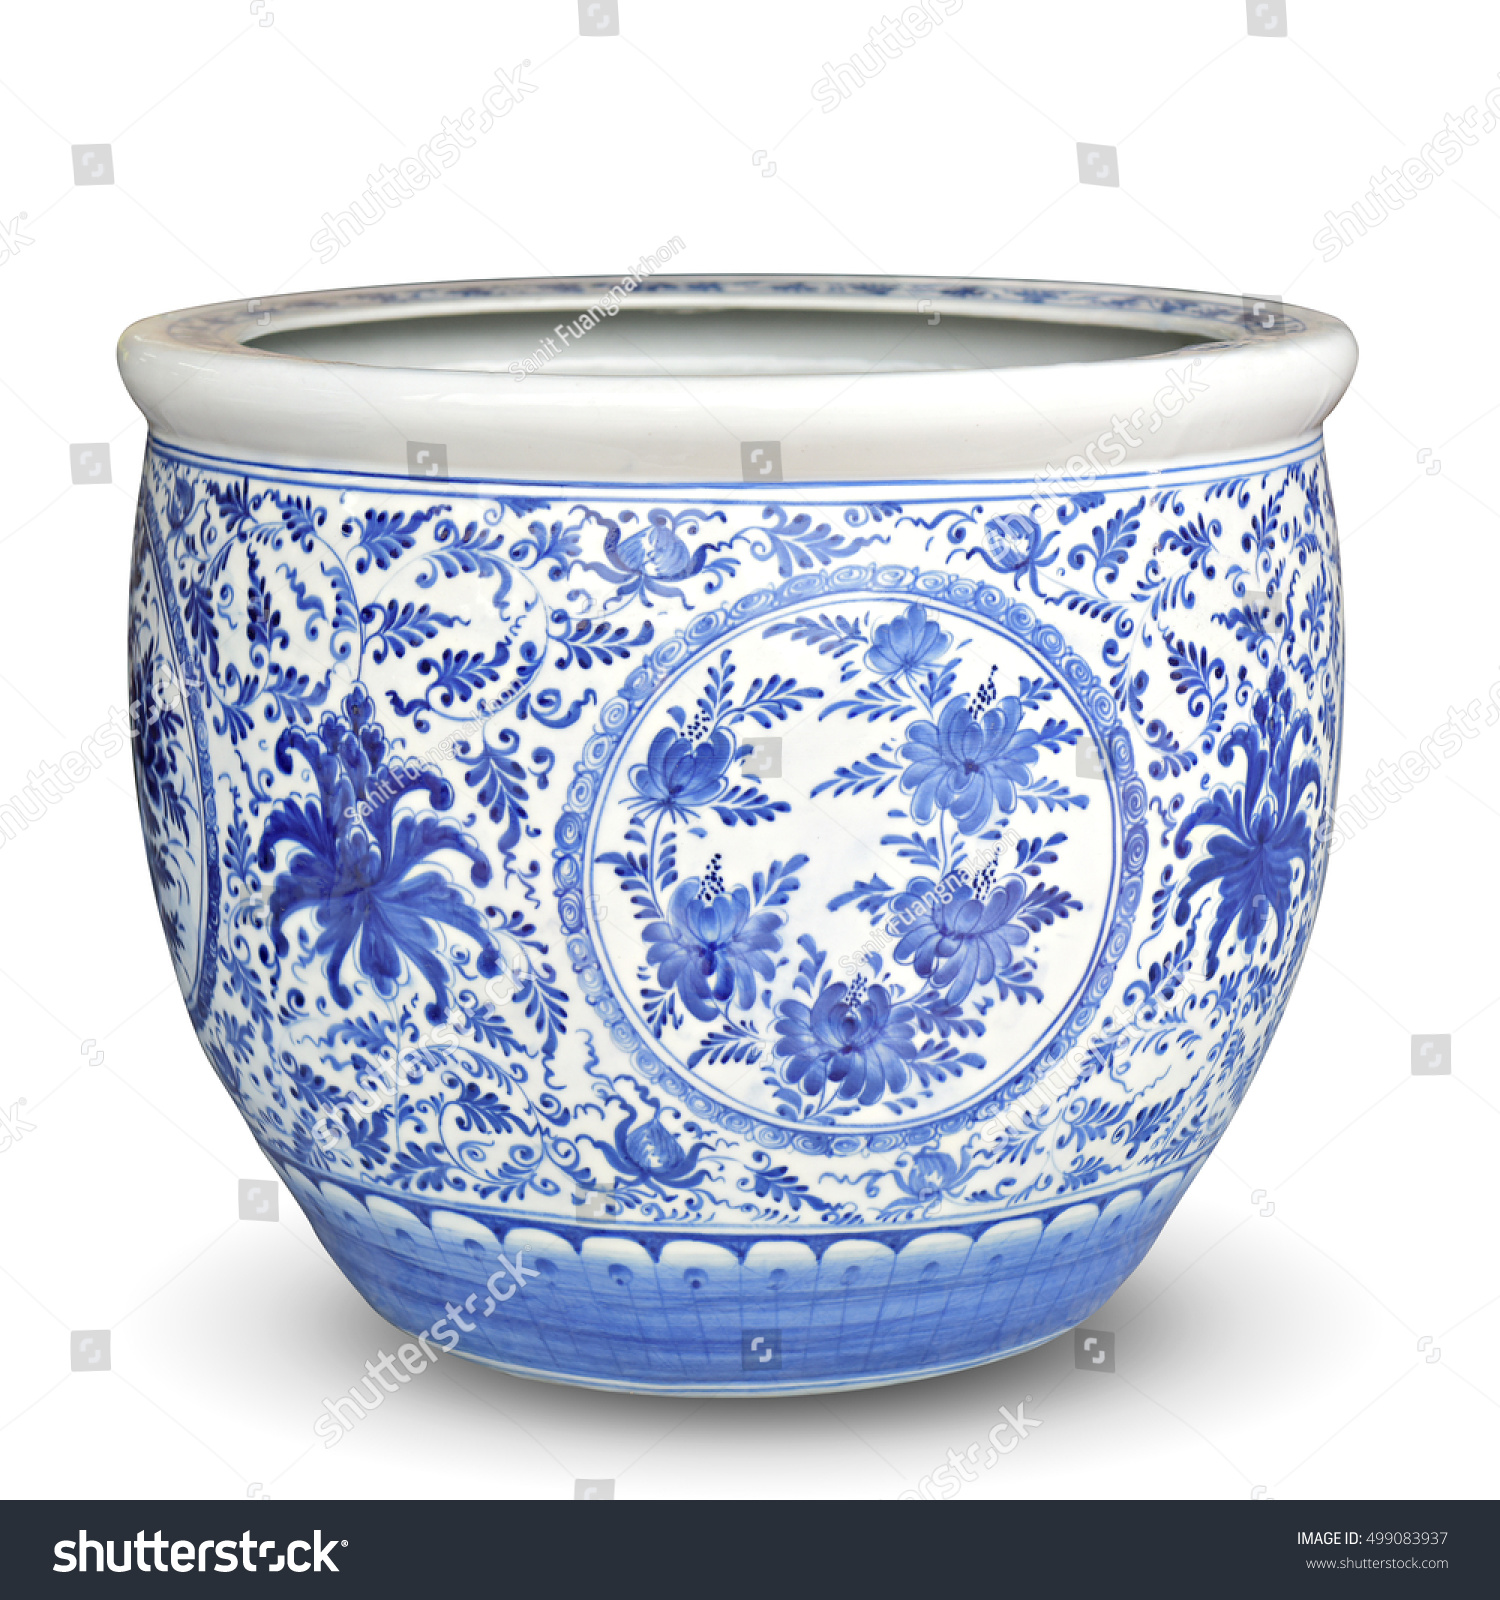 Chinese antique vase isolated on white stock photo 499083937 chinese antique vase isolated on white background this has clipping path reviewsmspy